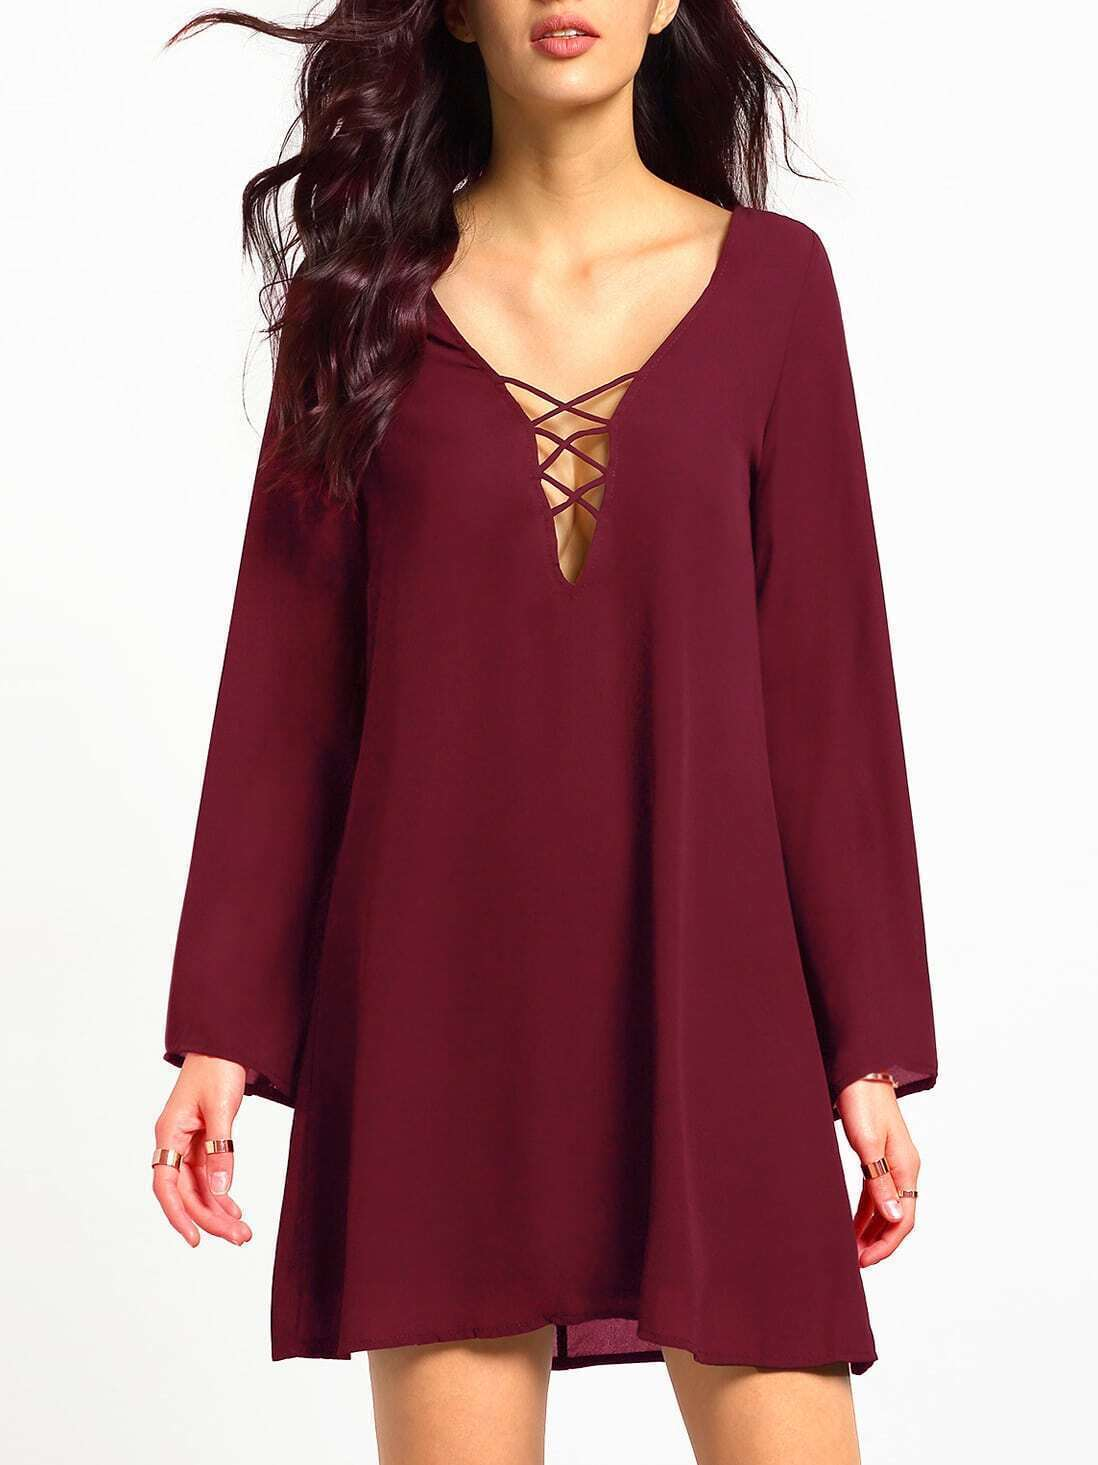 M - Womens Clothing Online Cheap Clothes 84